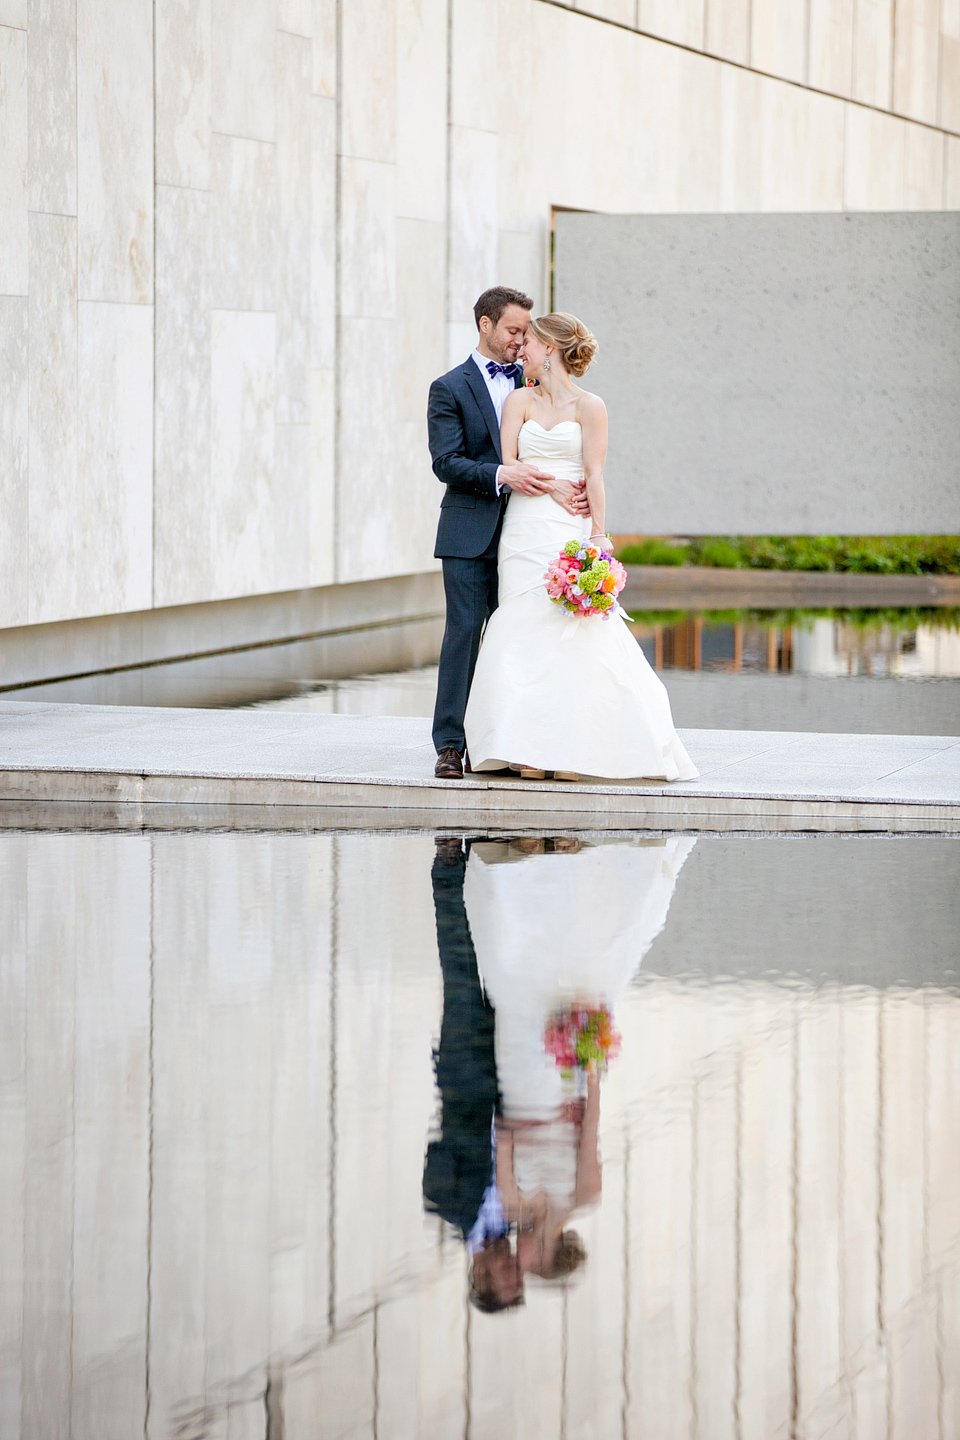 Erin & Stephen | Wedding Sneak Peak | Photos by Emily Wren